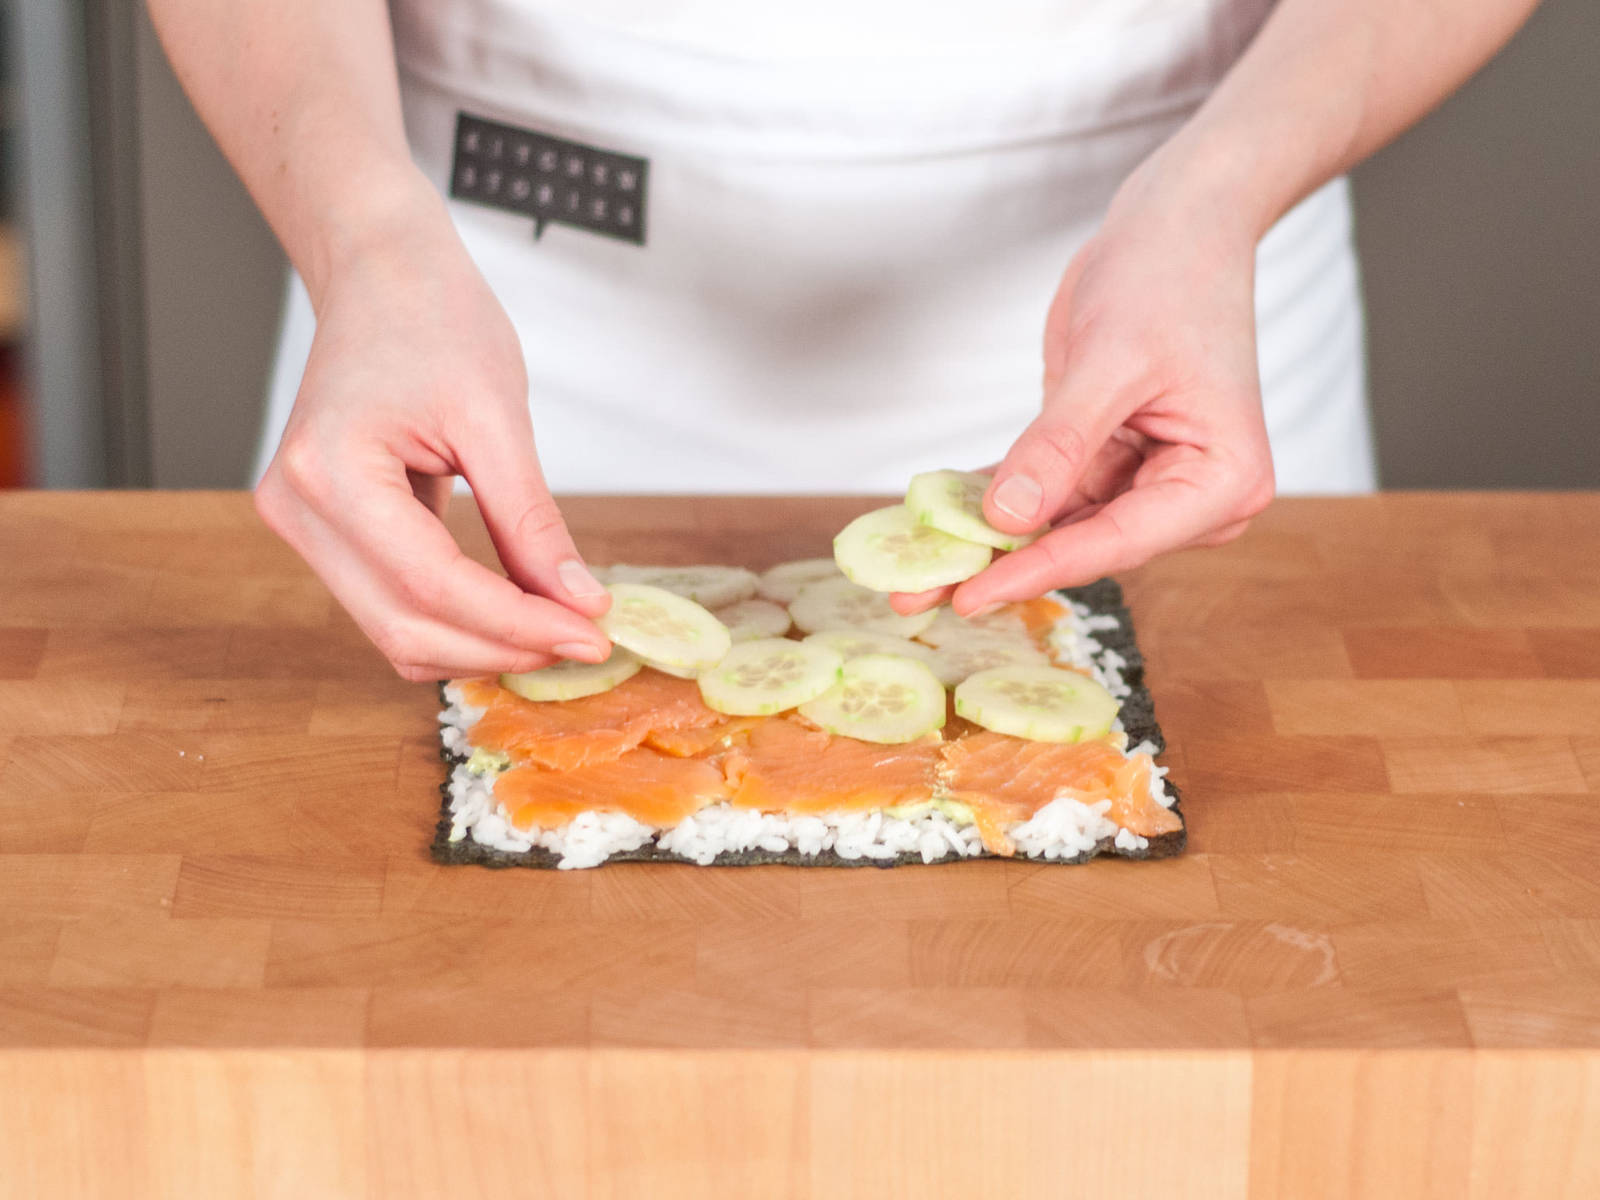 Place one nori sheet on cutting board. Layer with rice, avocado cream, salmon, cucumber, more salmon, avocado cream, and rice. Place another nori sheet on top. Lightly press down to ensure that all of the ingredients stay in place. Cut into triangle-shaped sandwiches. Enjoy as a snack or light meal!